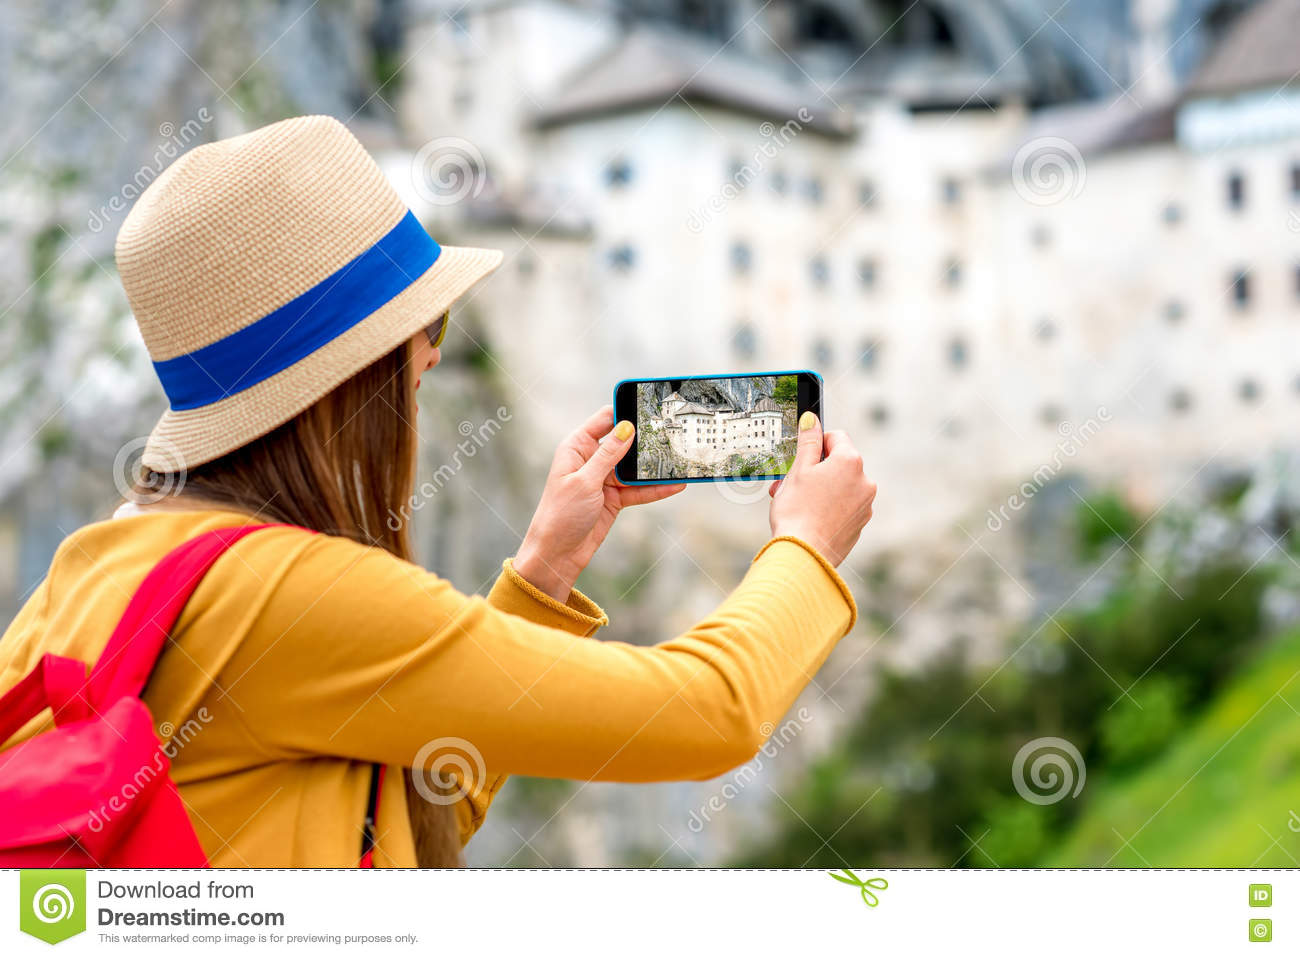 Woman traveling in Slovenia